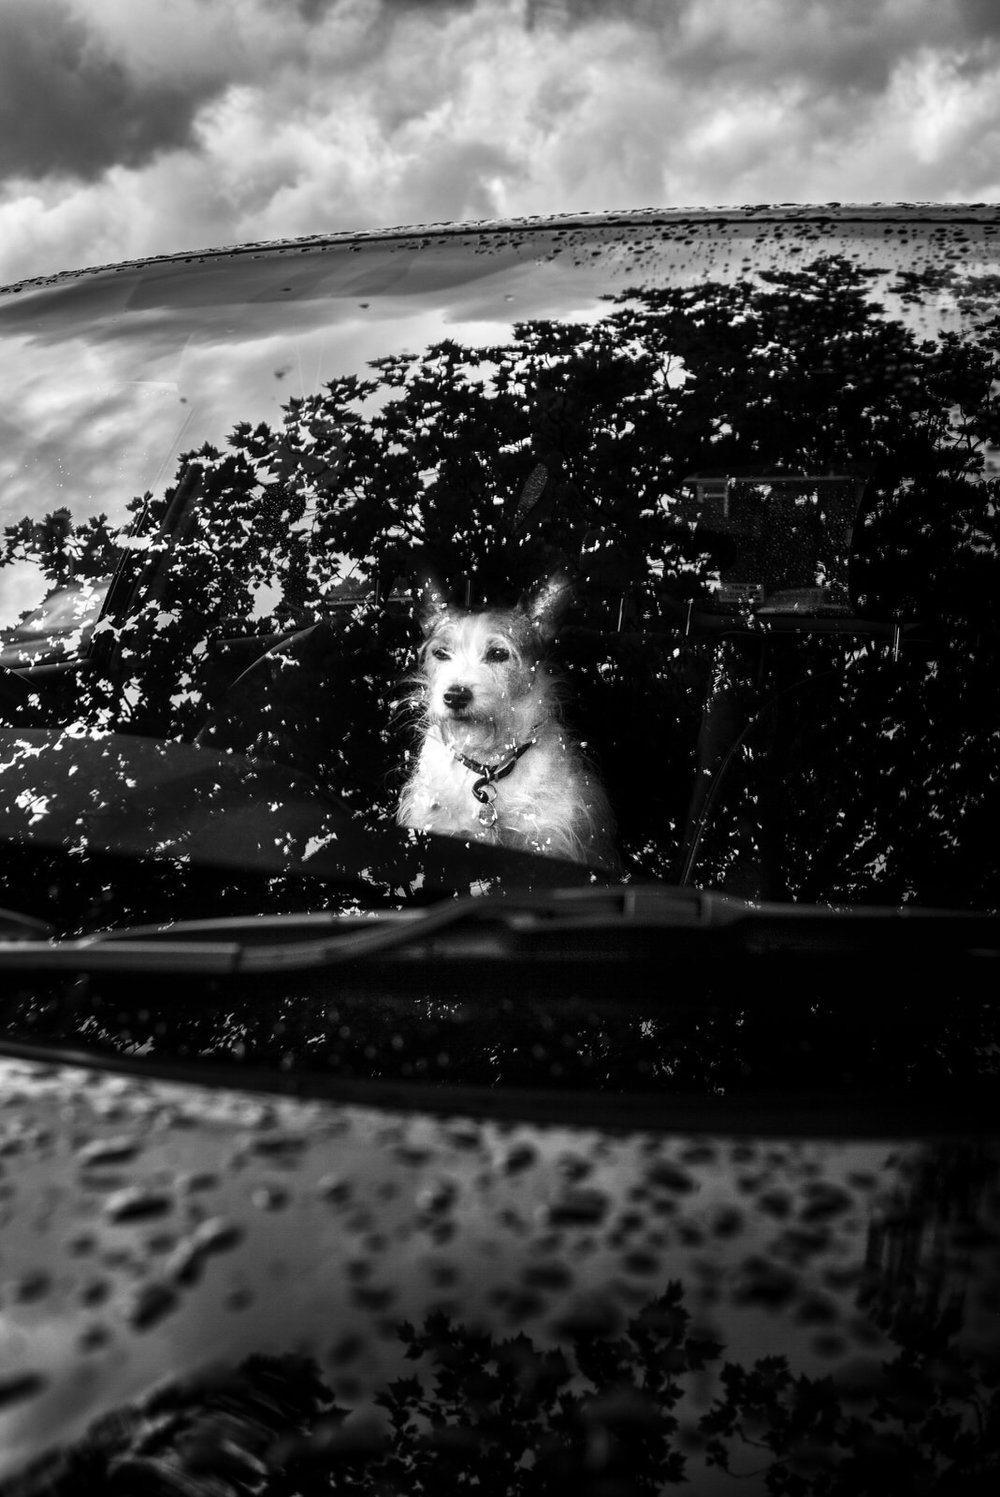 Alan Schaller - Street Photographer - Dogs 9.jpg